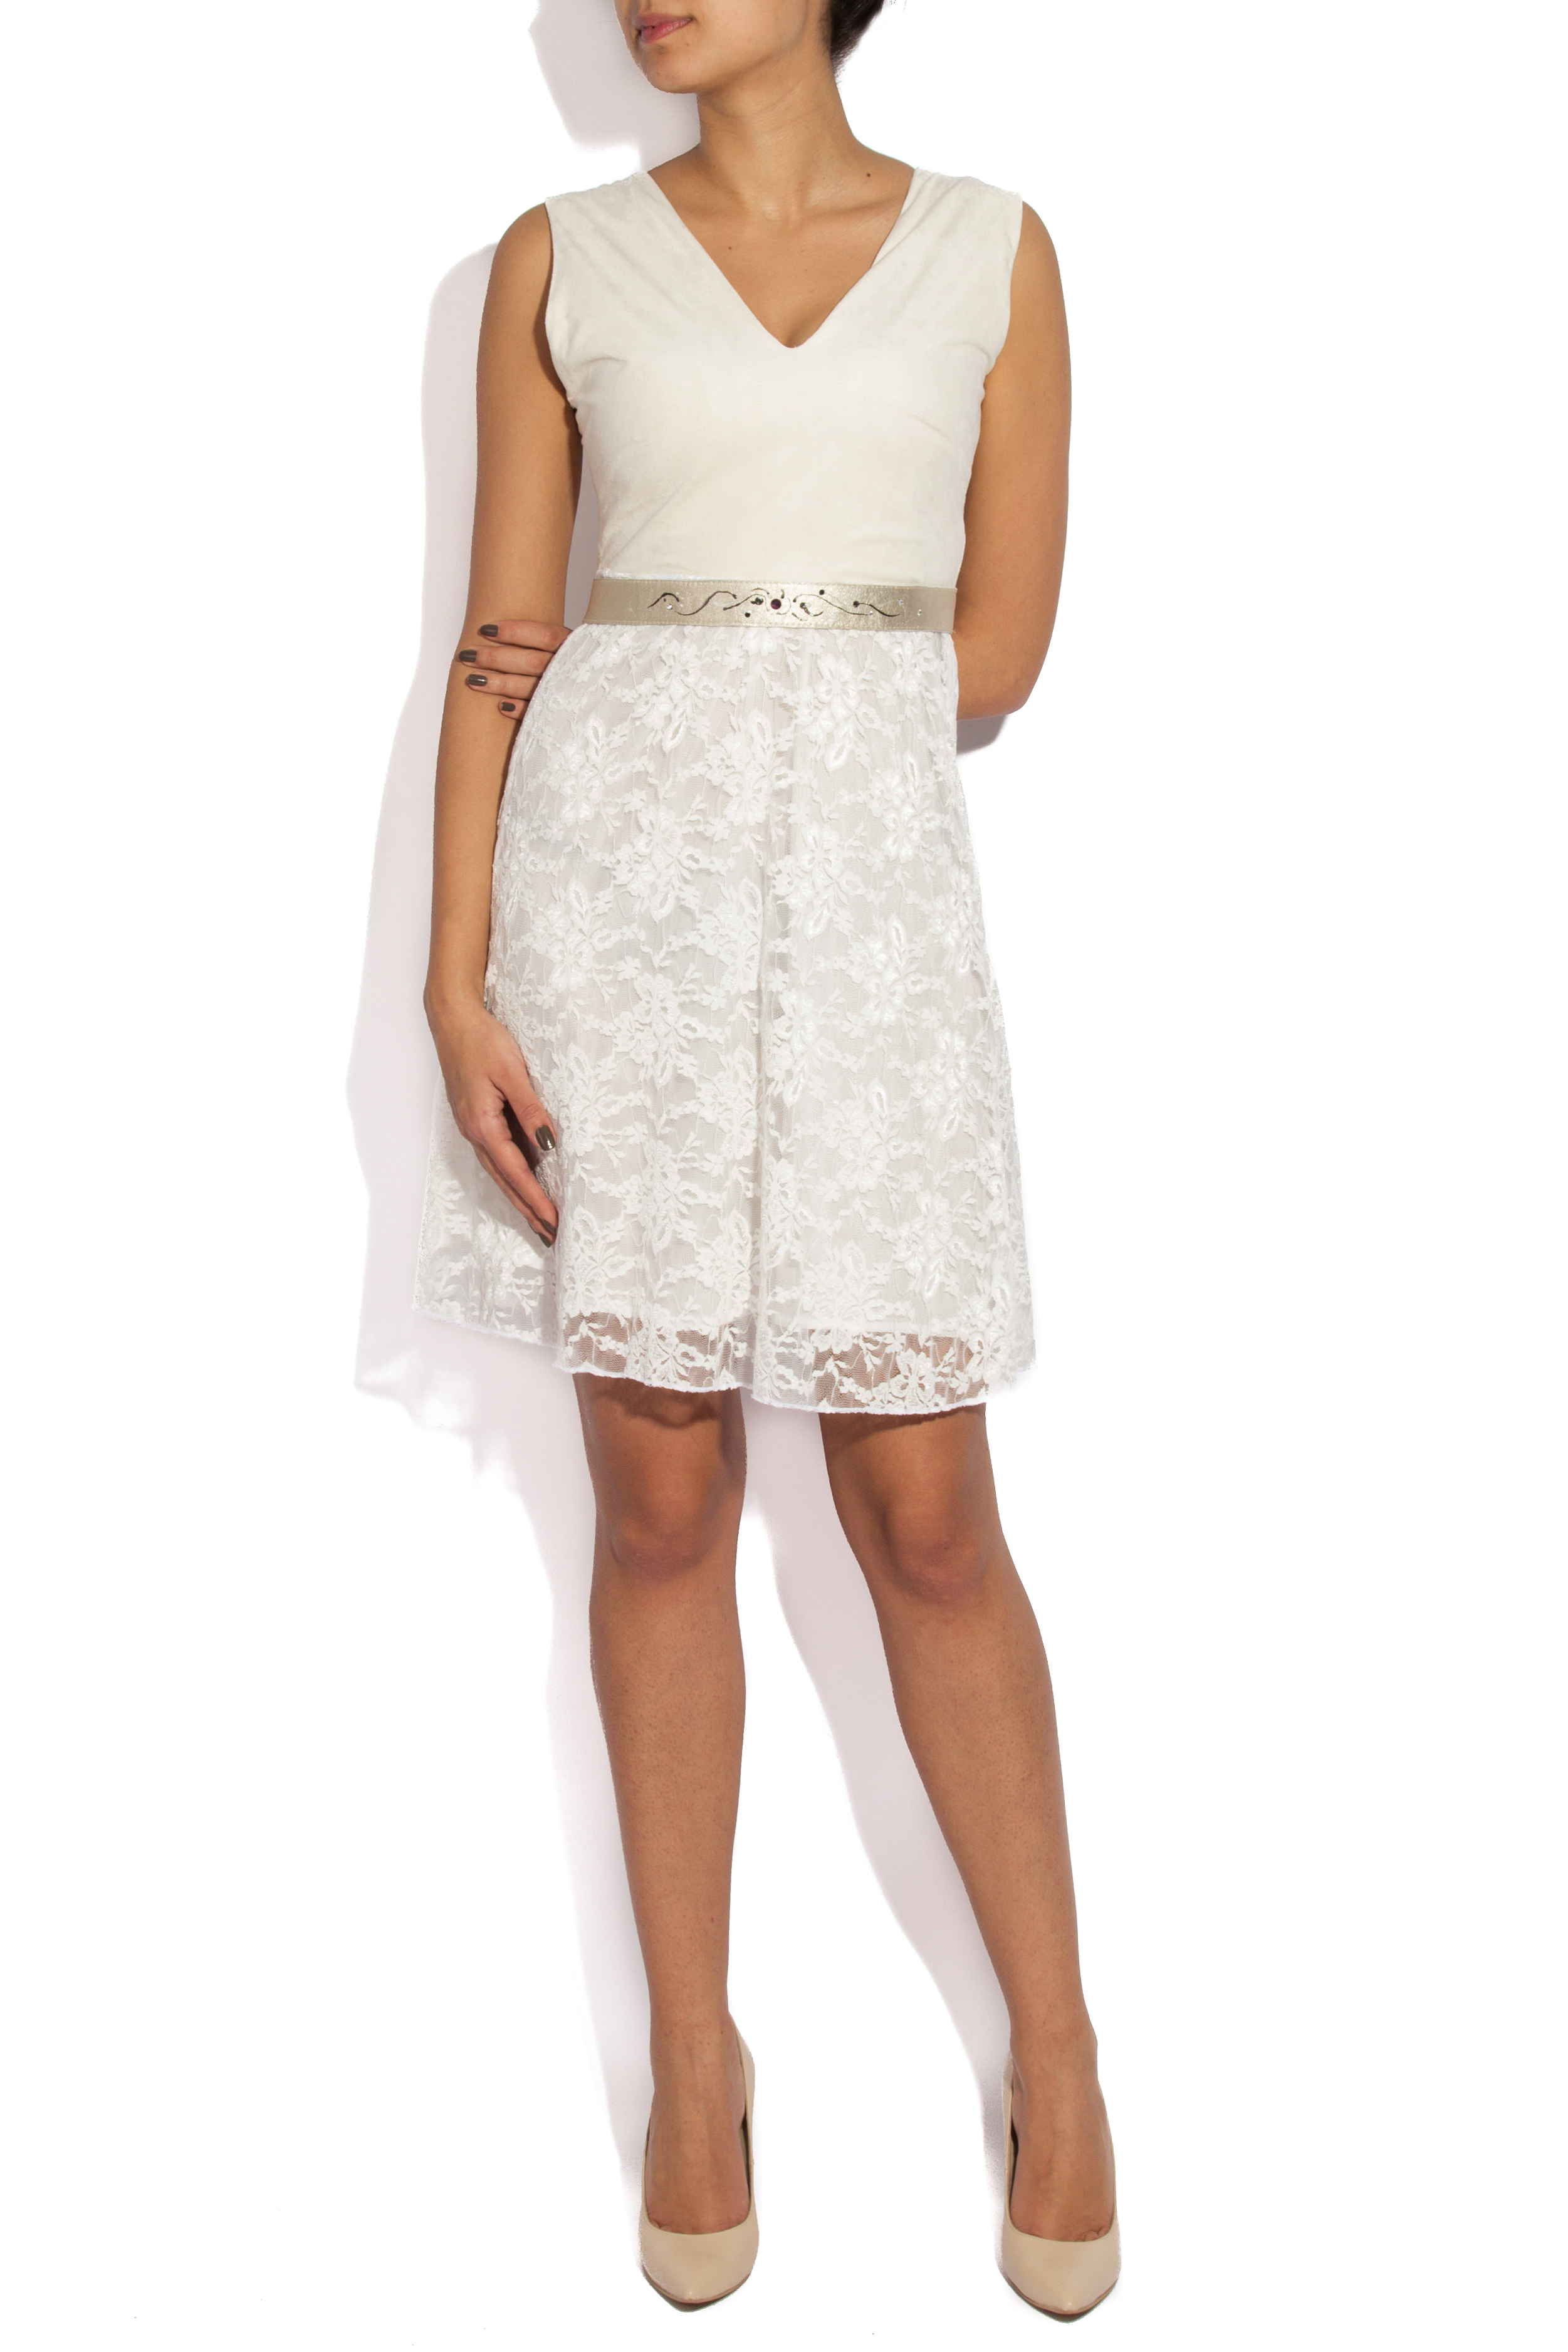 White lace and velvet dress B.A.D. Style by Adriana Barar image 0